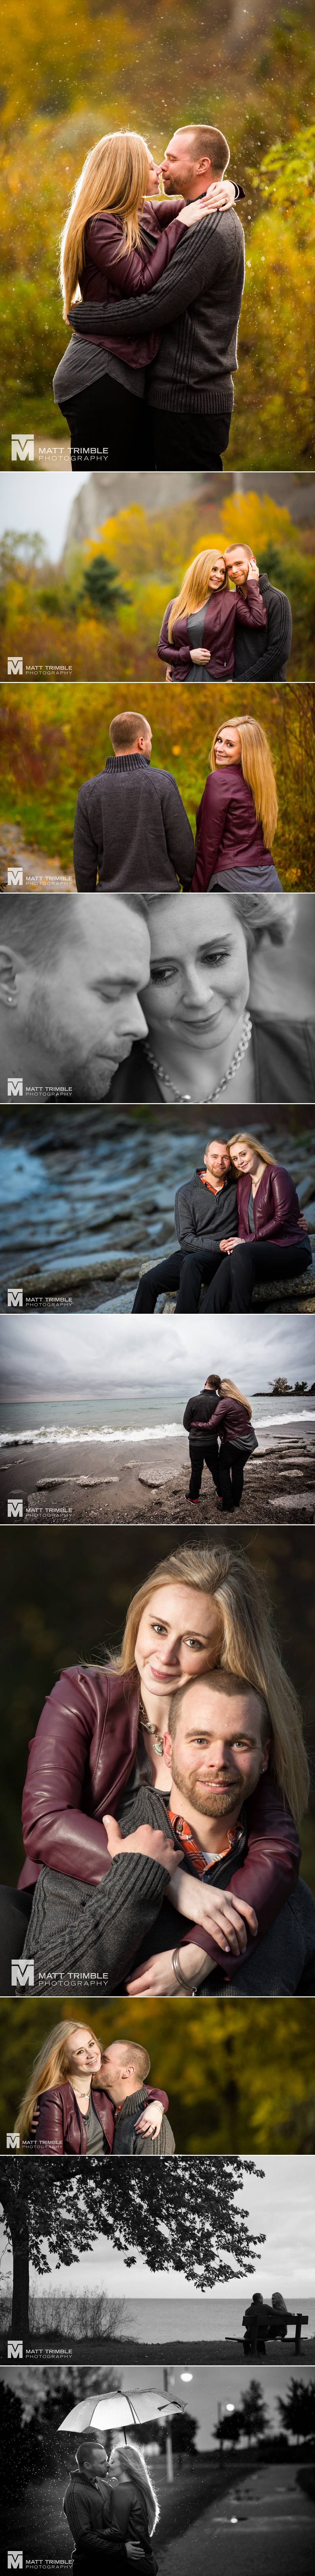 rainy engagement photography at the Scarborough Bluffs